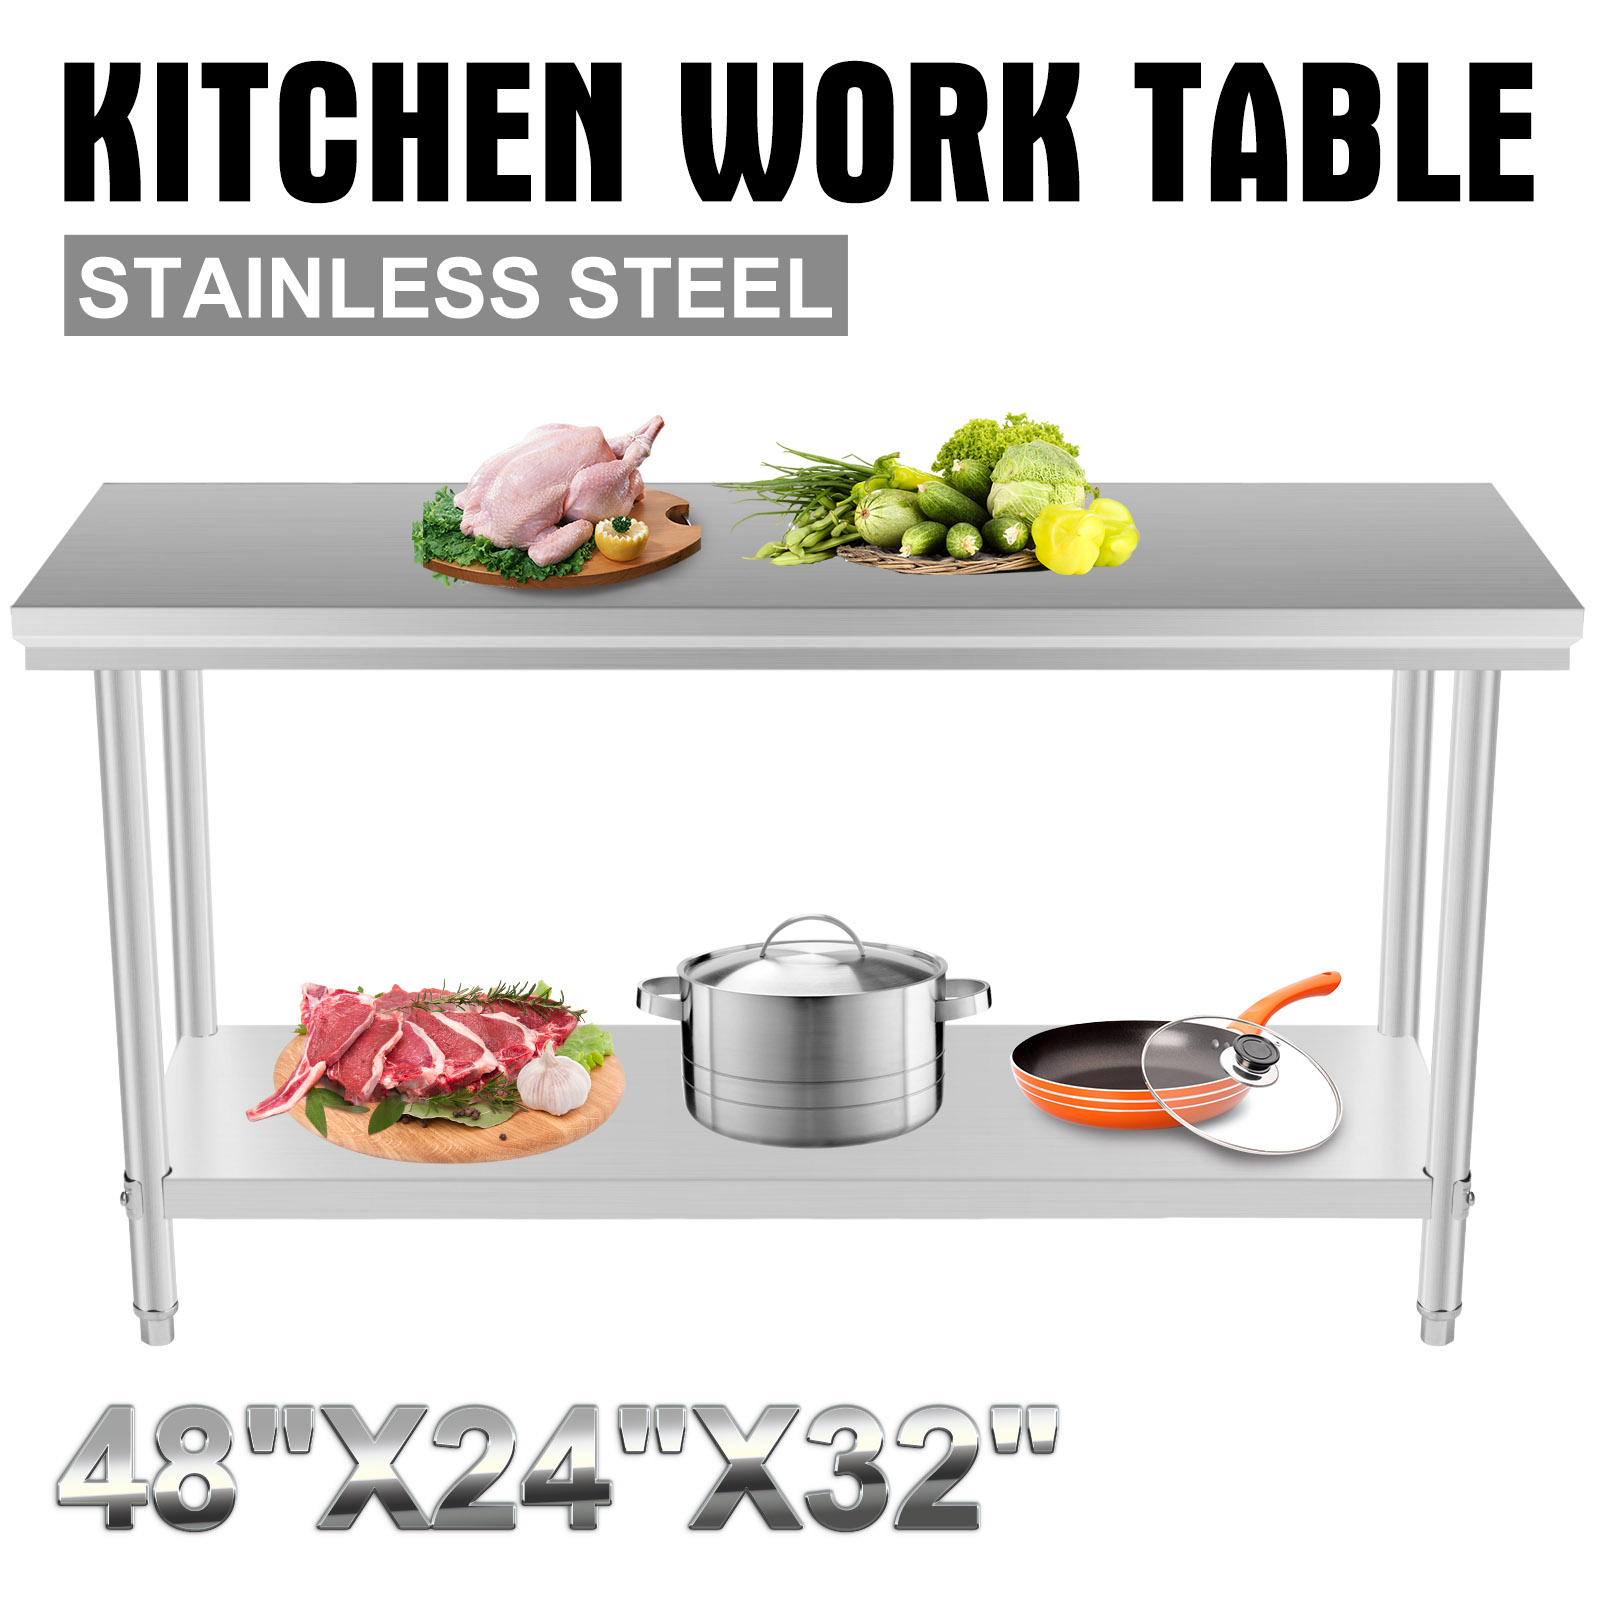 New Kitchen That Work New Stainless Steel Kitchen Restaurant Work Bench Food Prep Table